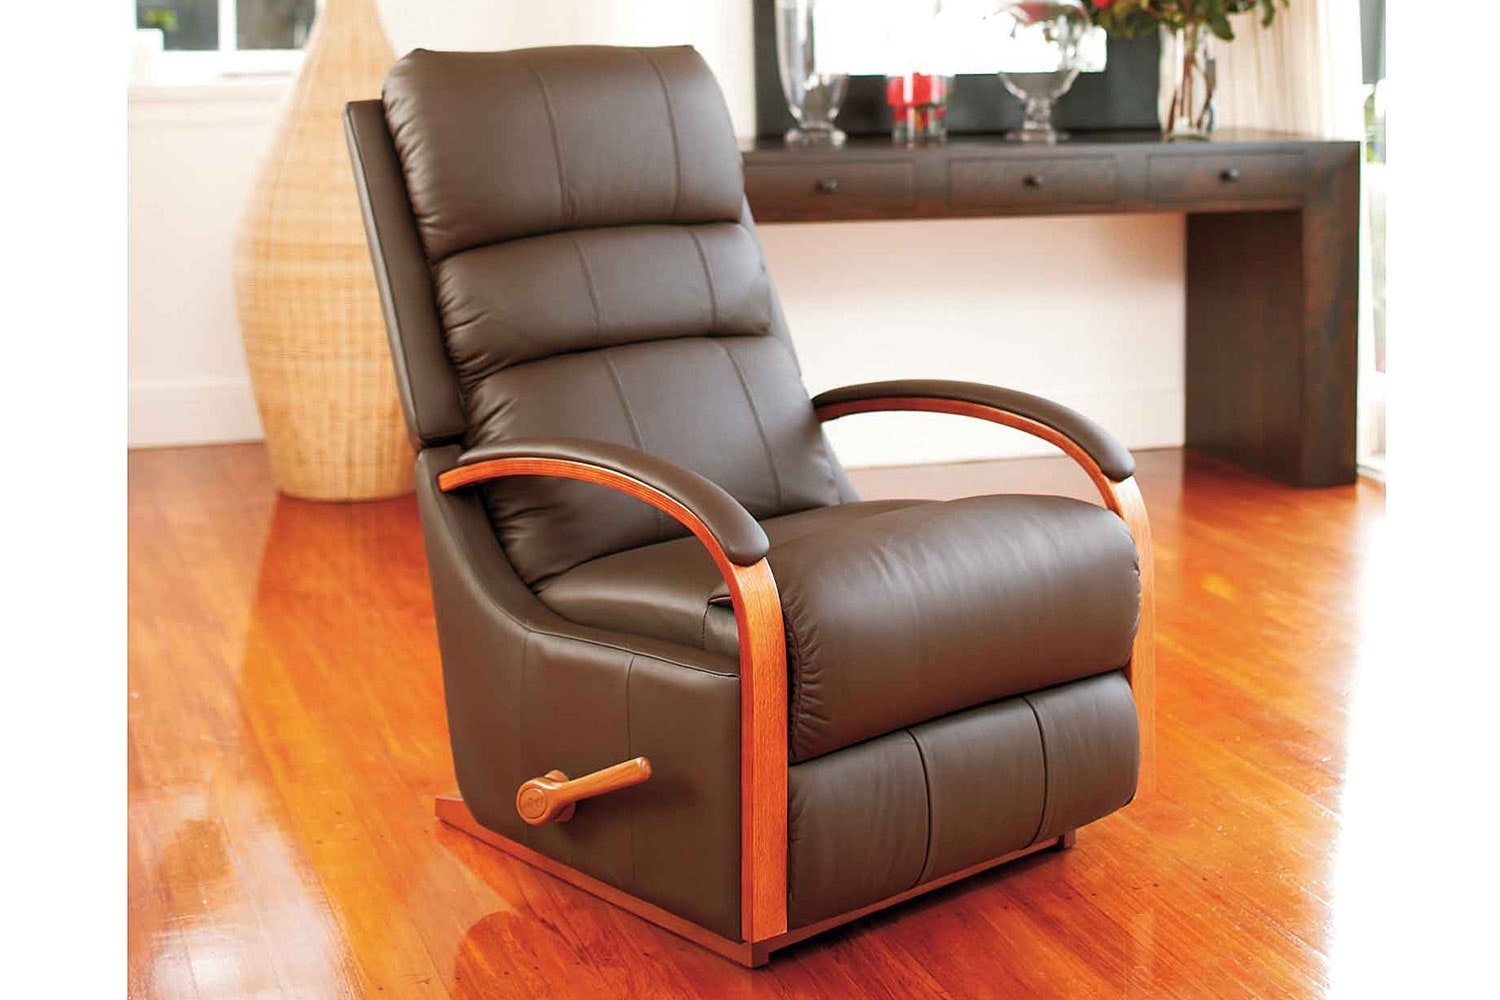 Charleston Leather La-Z-Boy Recliner Chair  sc 1 st  Harvey Norman & Charleston Leather Recliner Chair by La-Z-Boy | Harvey Norman New ... islam-shia.org